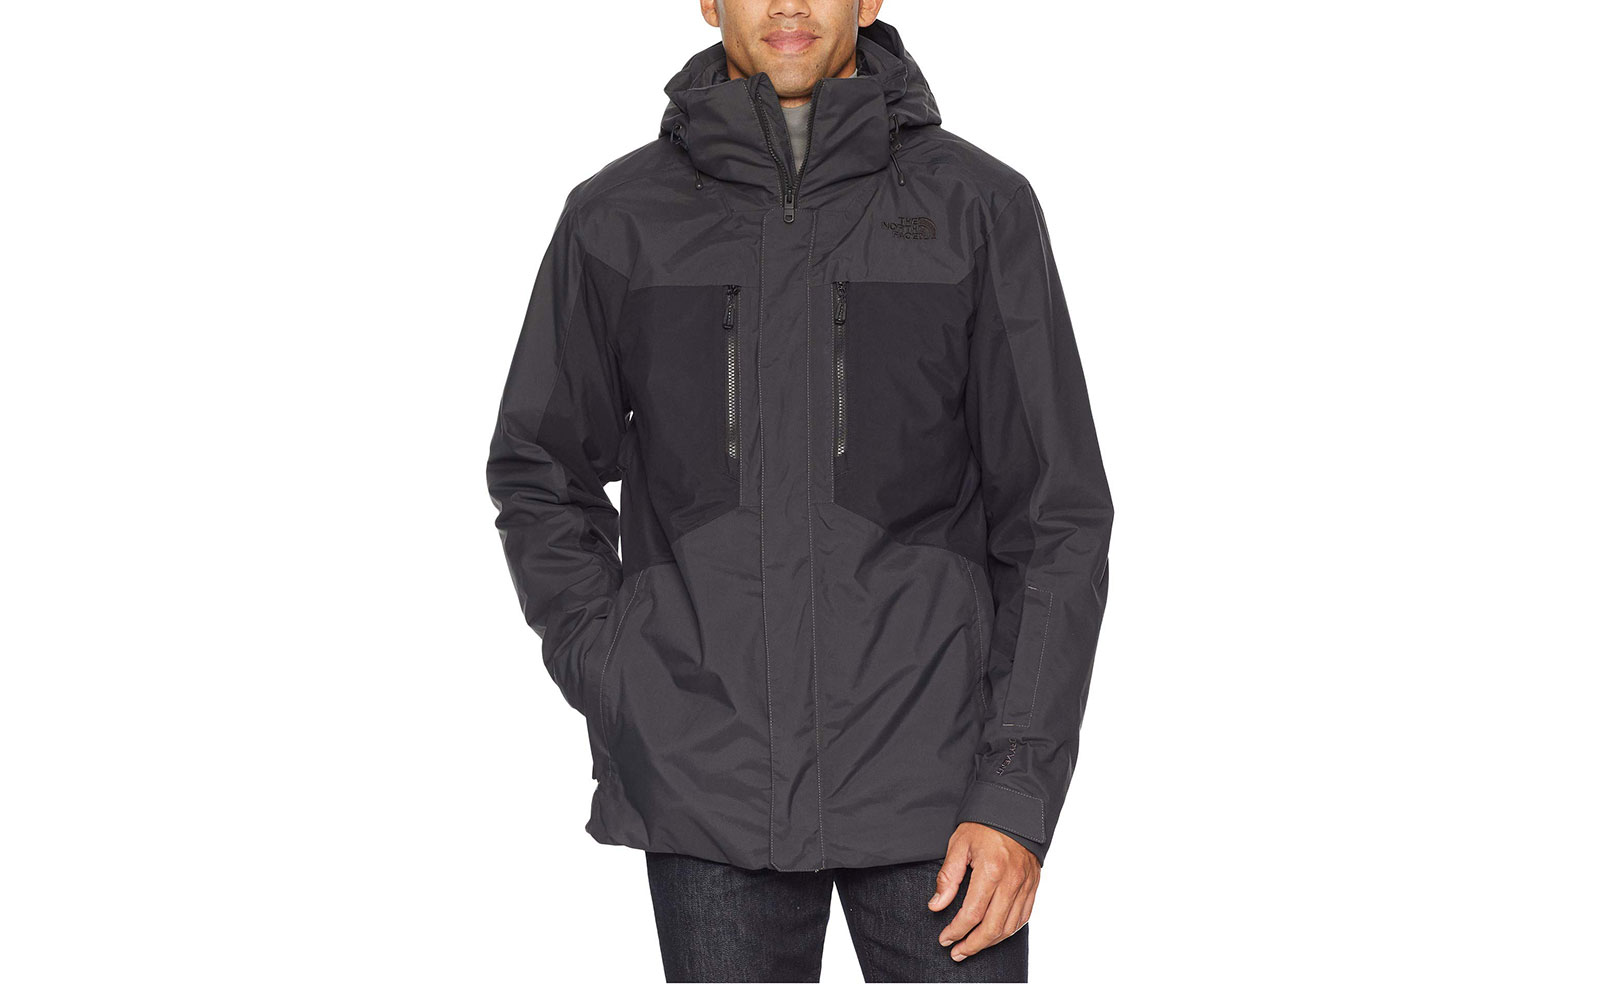 the-north-face-clement-triclimate-jacket-WINTERCOATS1019.jpg